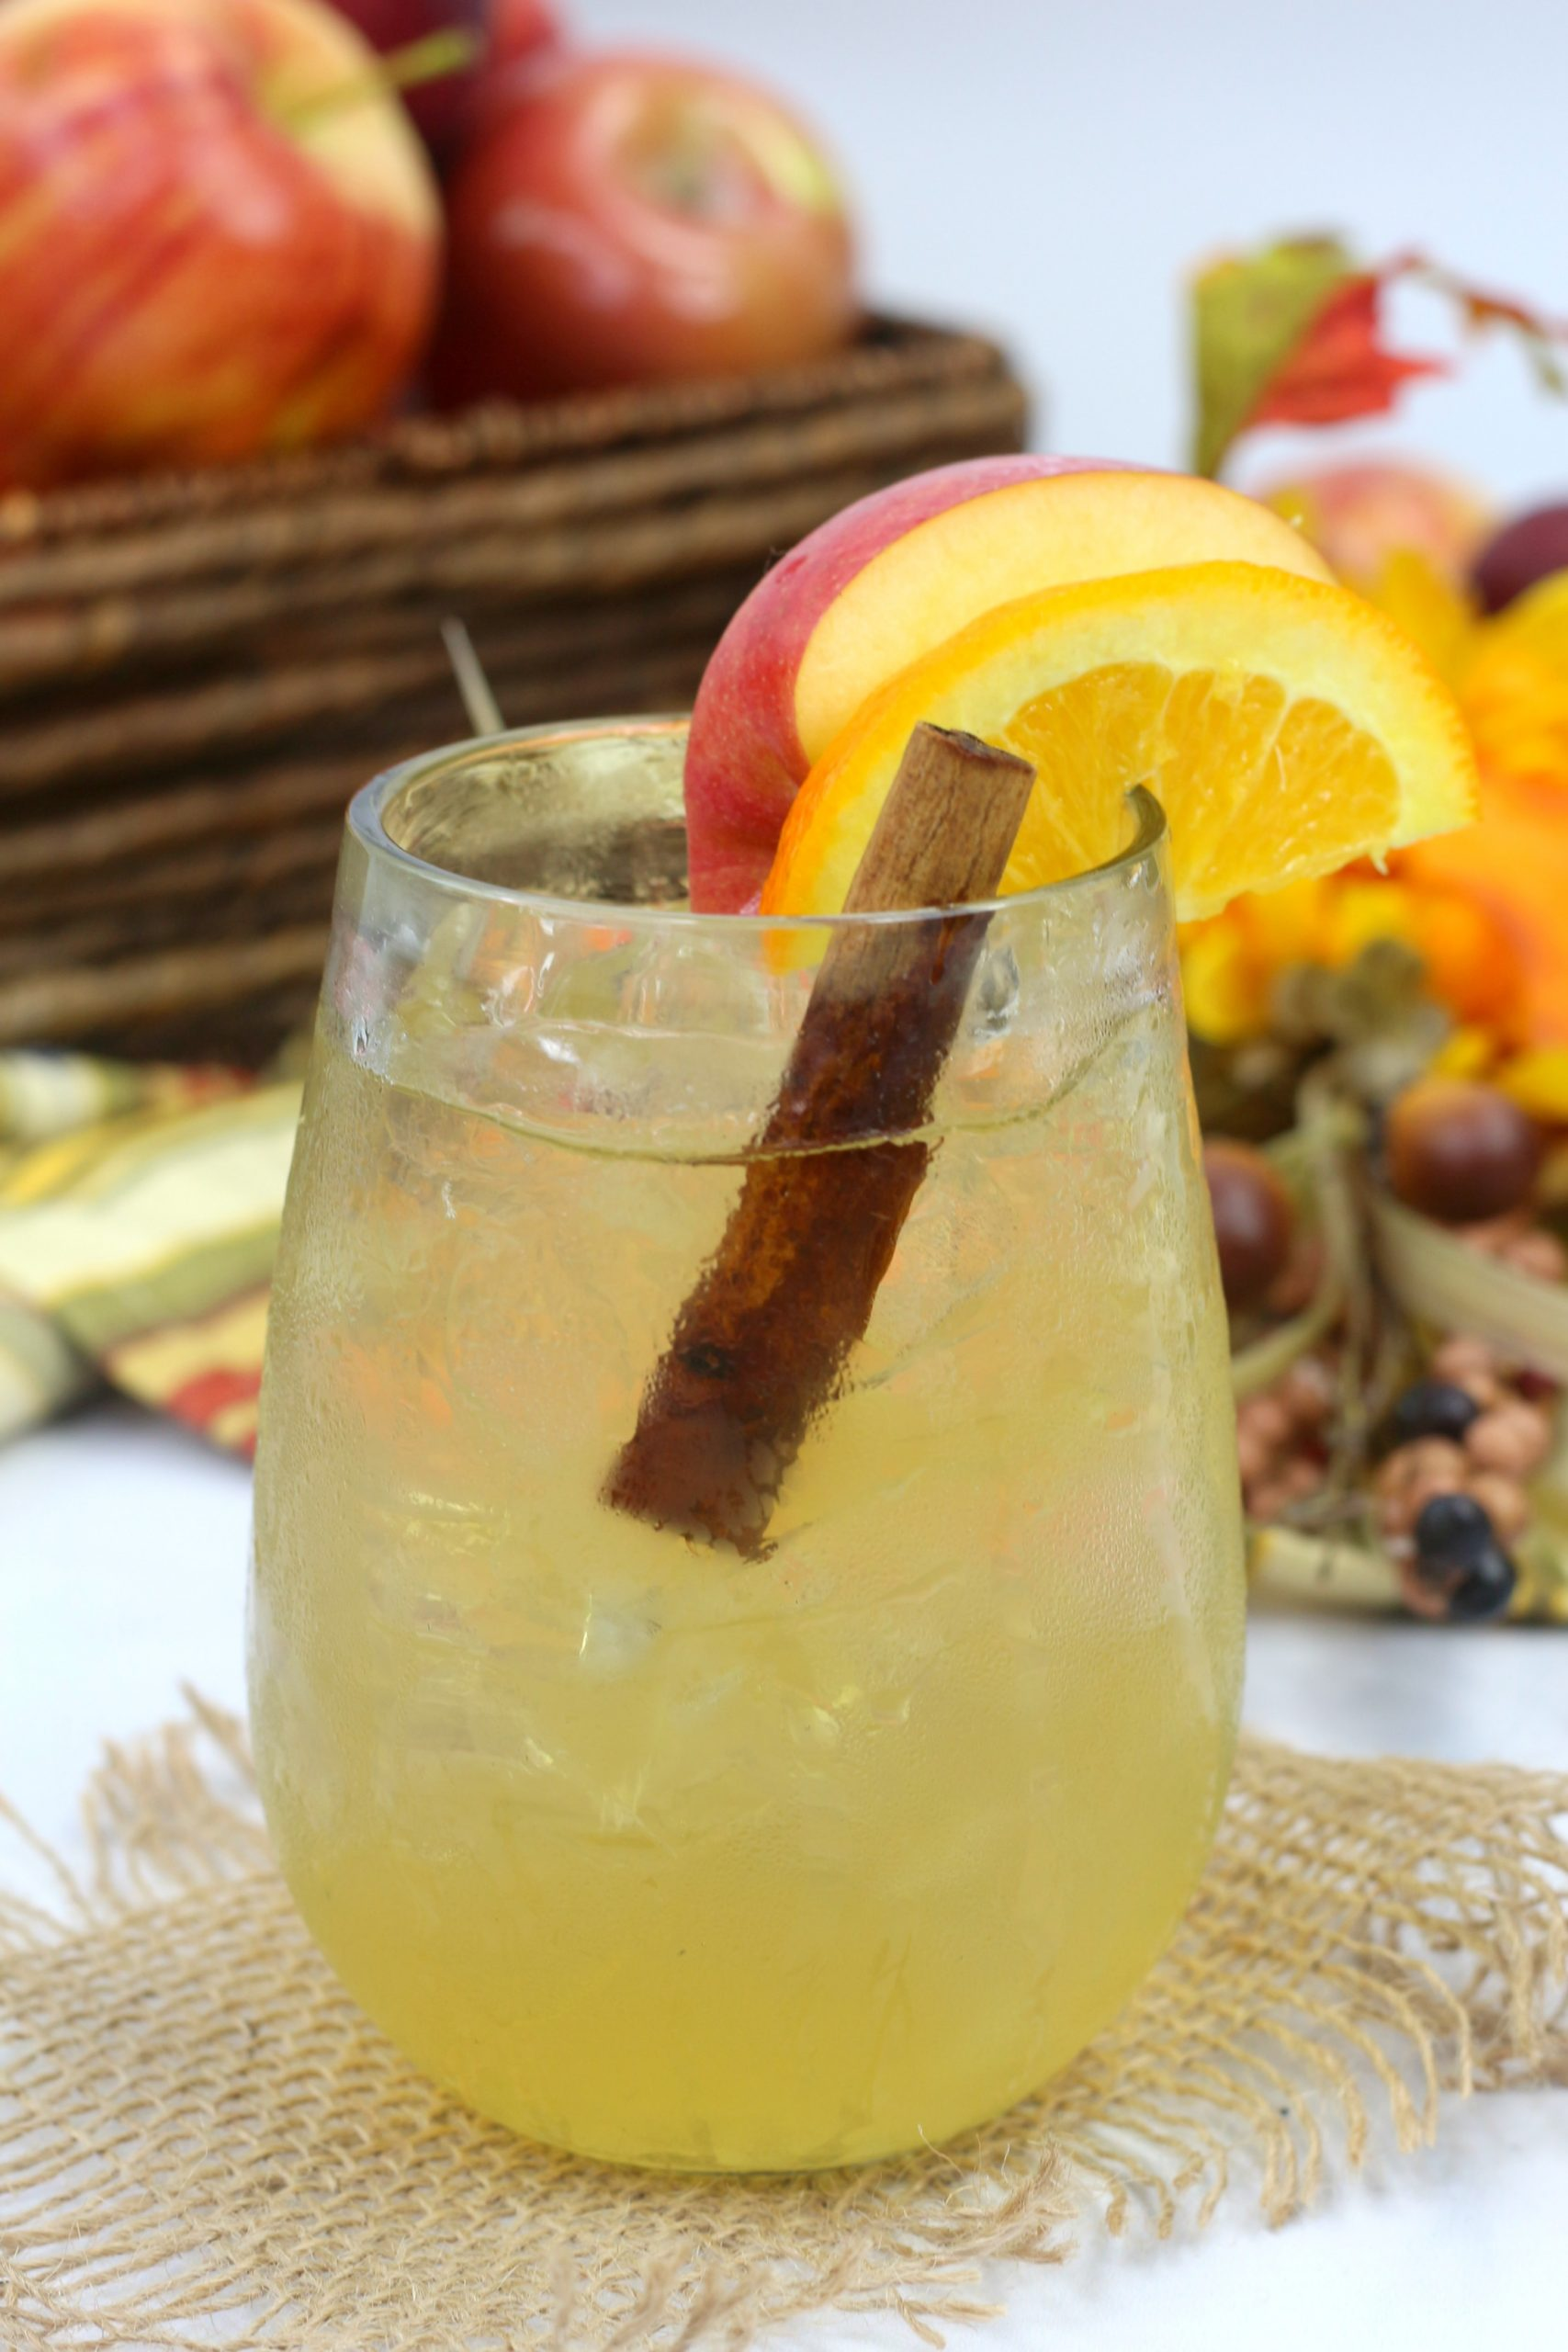 Apple Cider Old Fashioned Cocktail Recipe